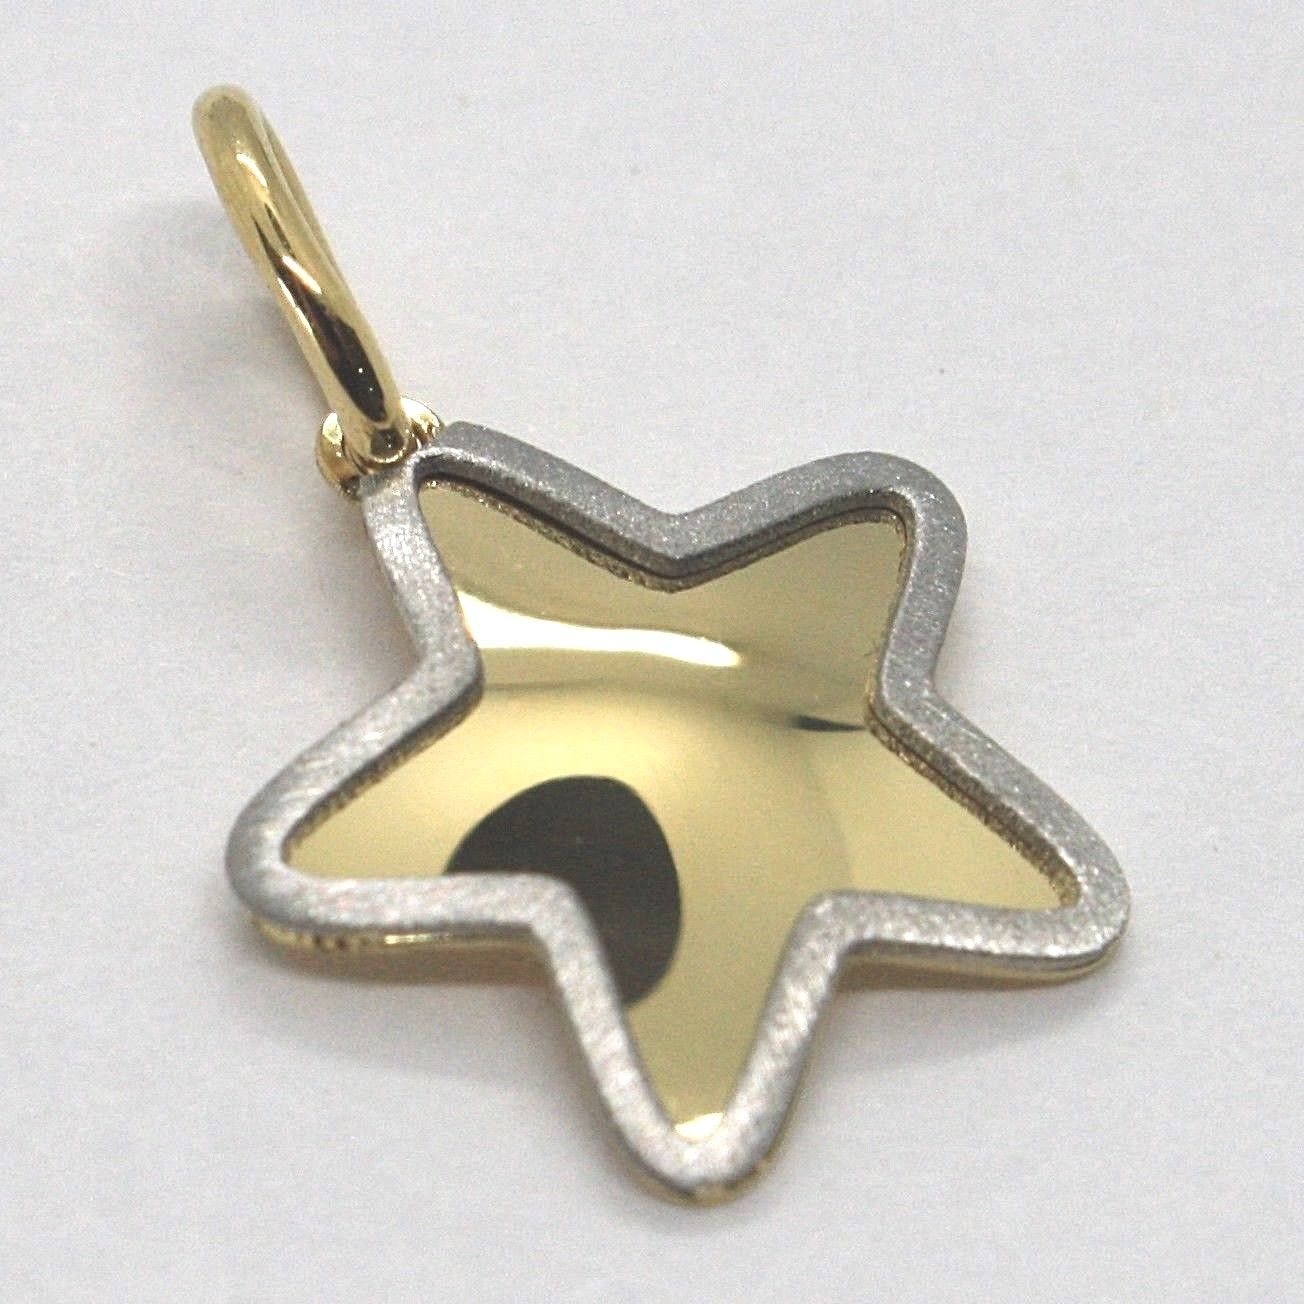 YELLOW GOLD PENDANT WHITE 750 18K, STAR WITH EDGE SATIN, MADE IN ITALY